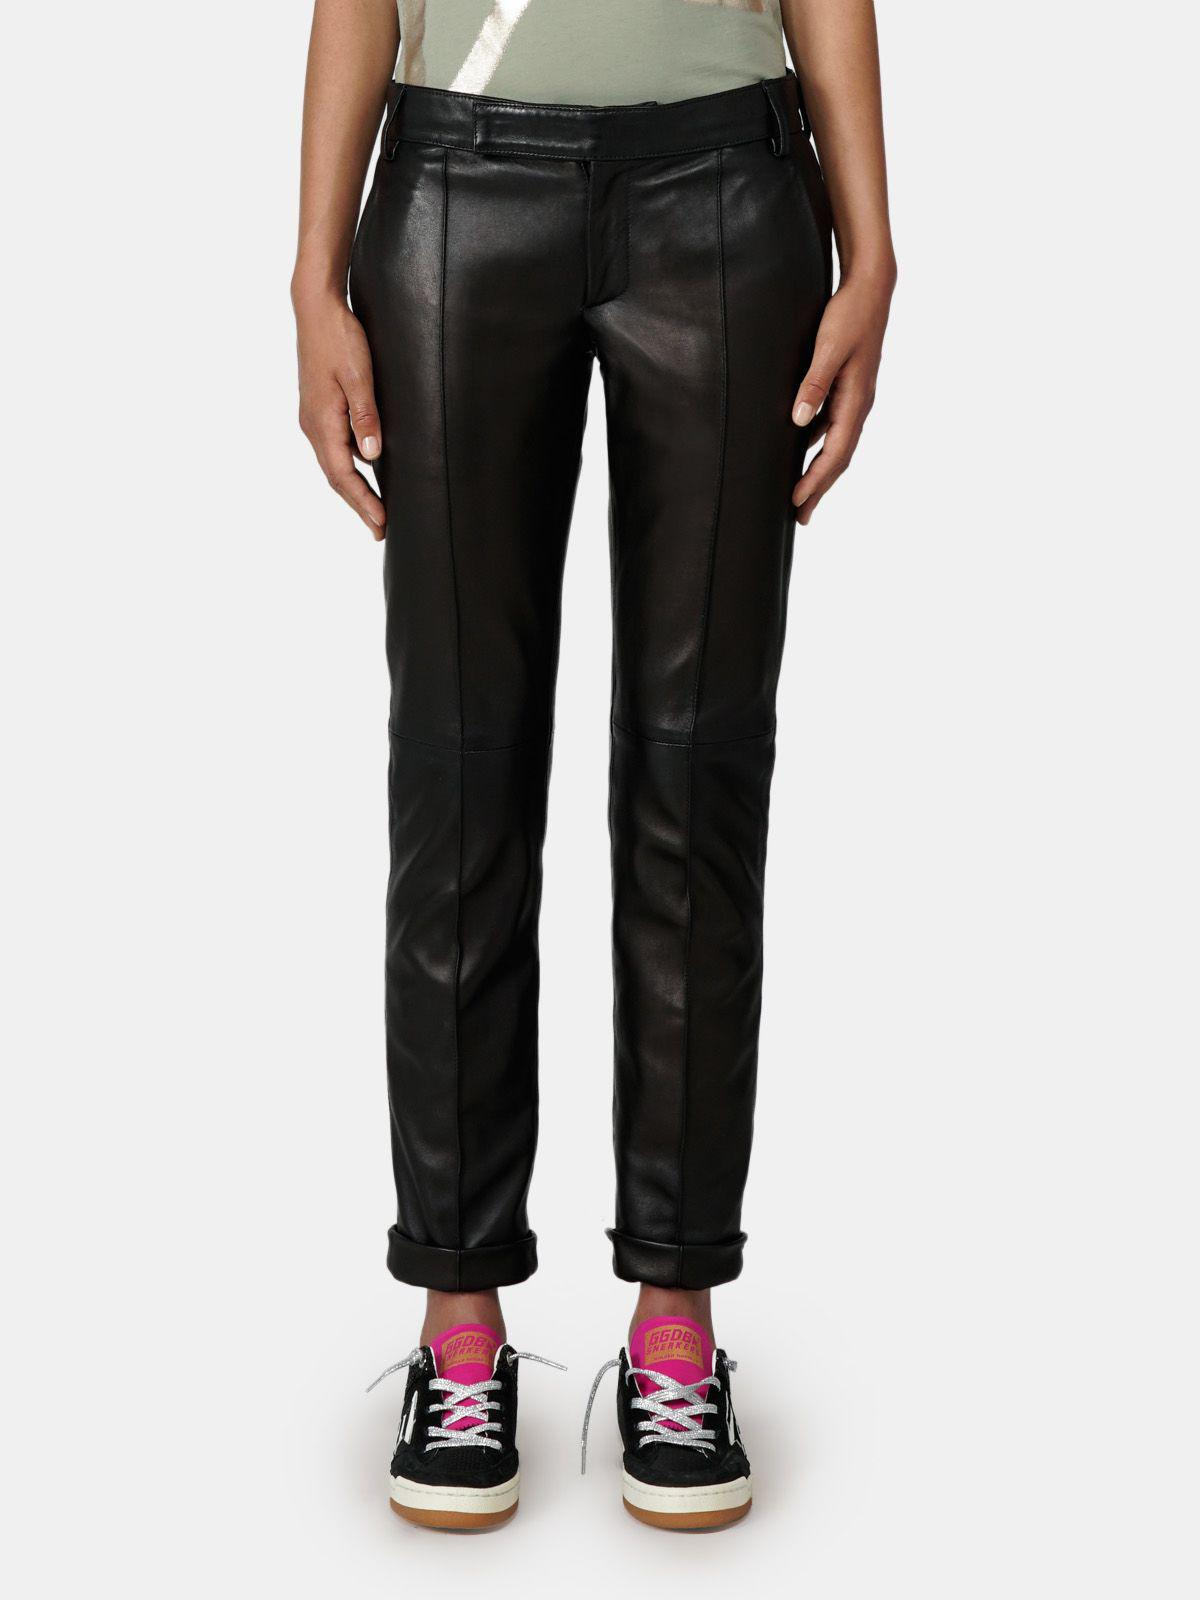 Black Agathe trousers in nappa leather